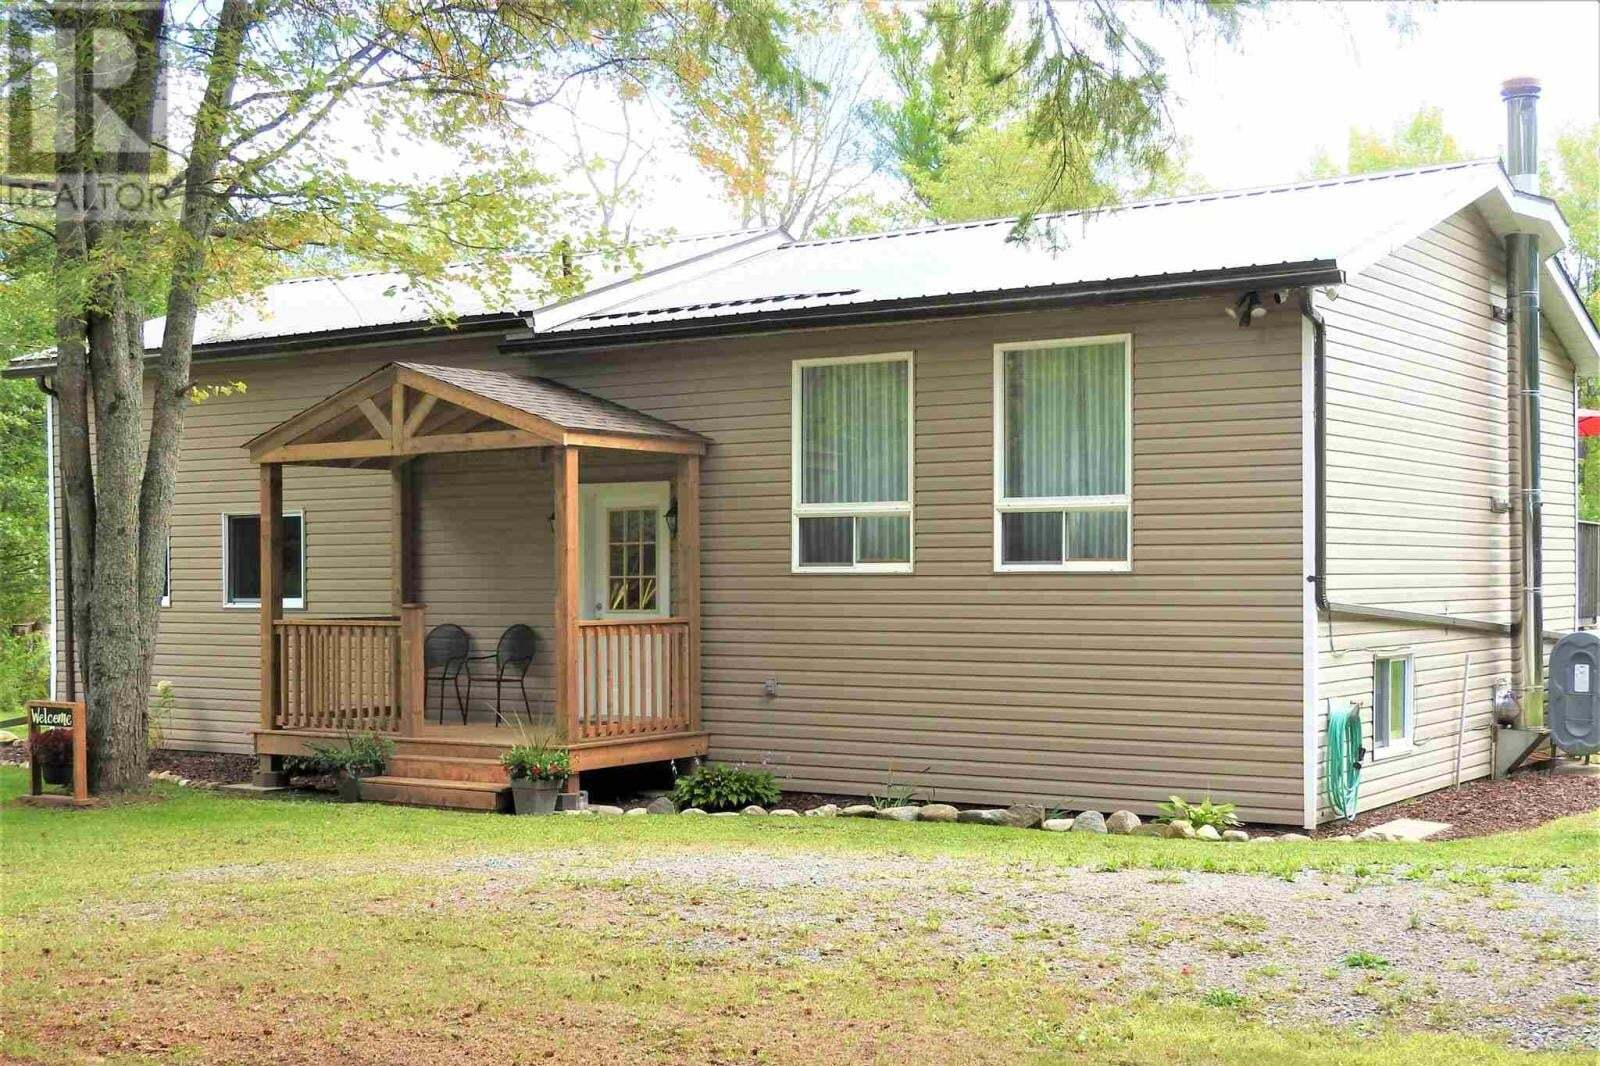 House for sale at 1719 Bordenwood Rd Central Frontenac Twp Ontario - MLS: K20005530